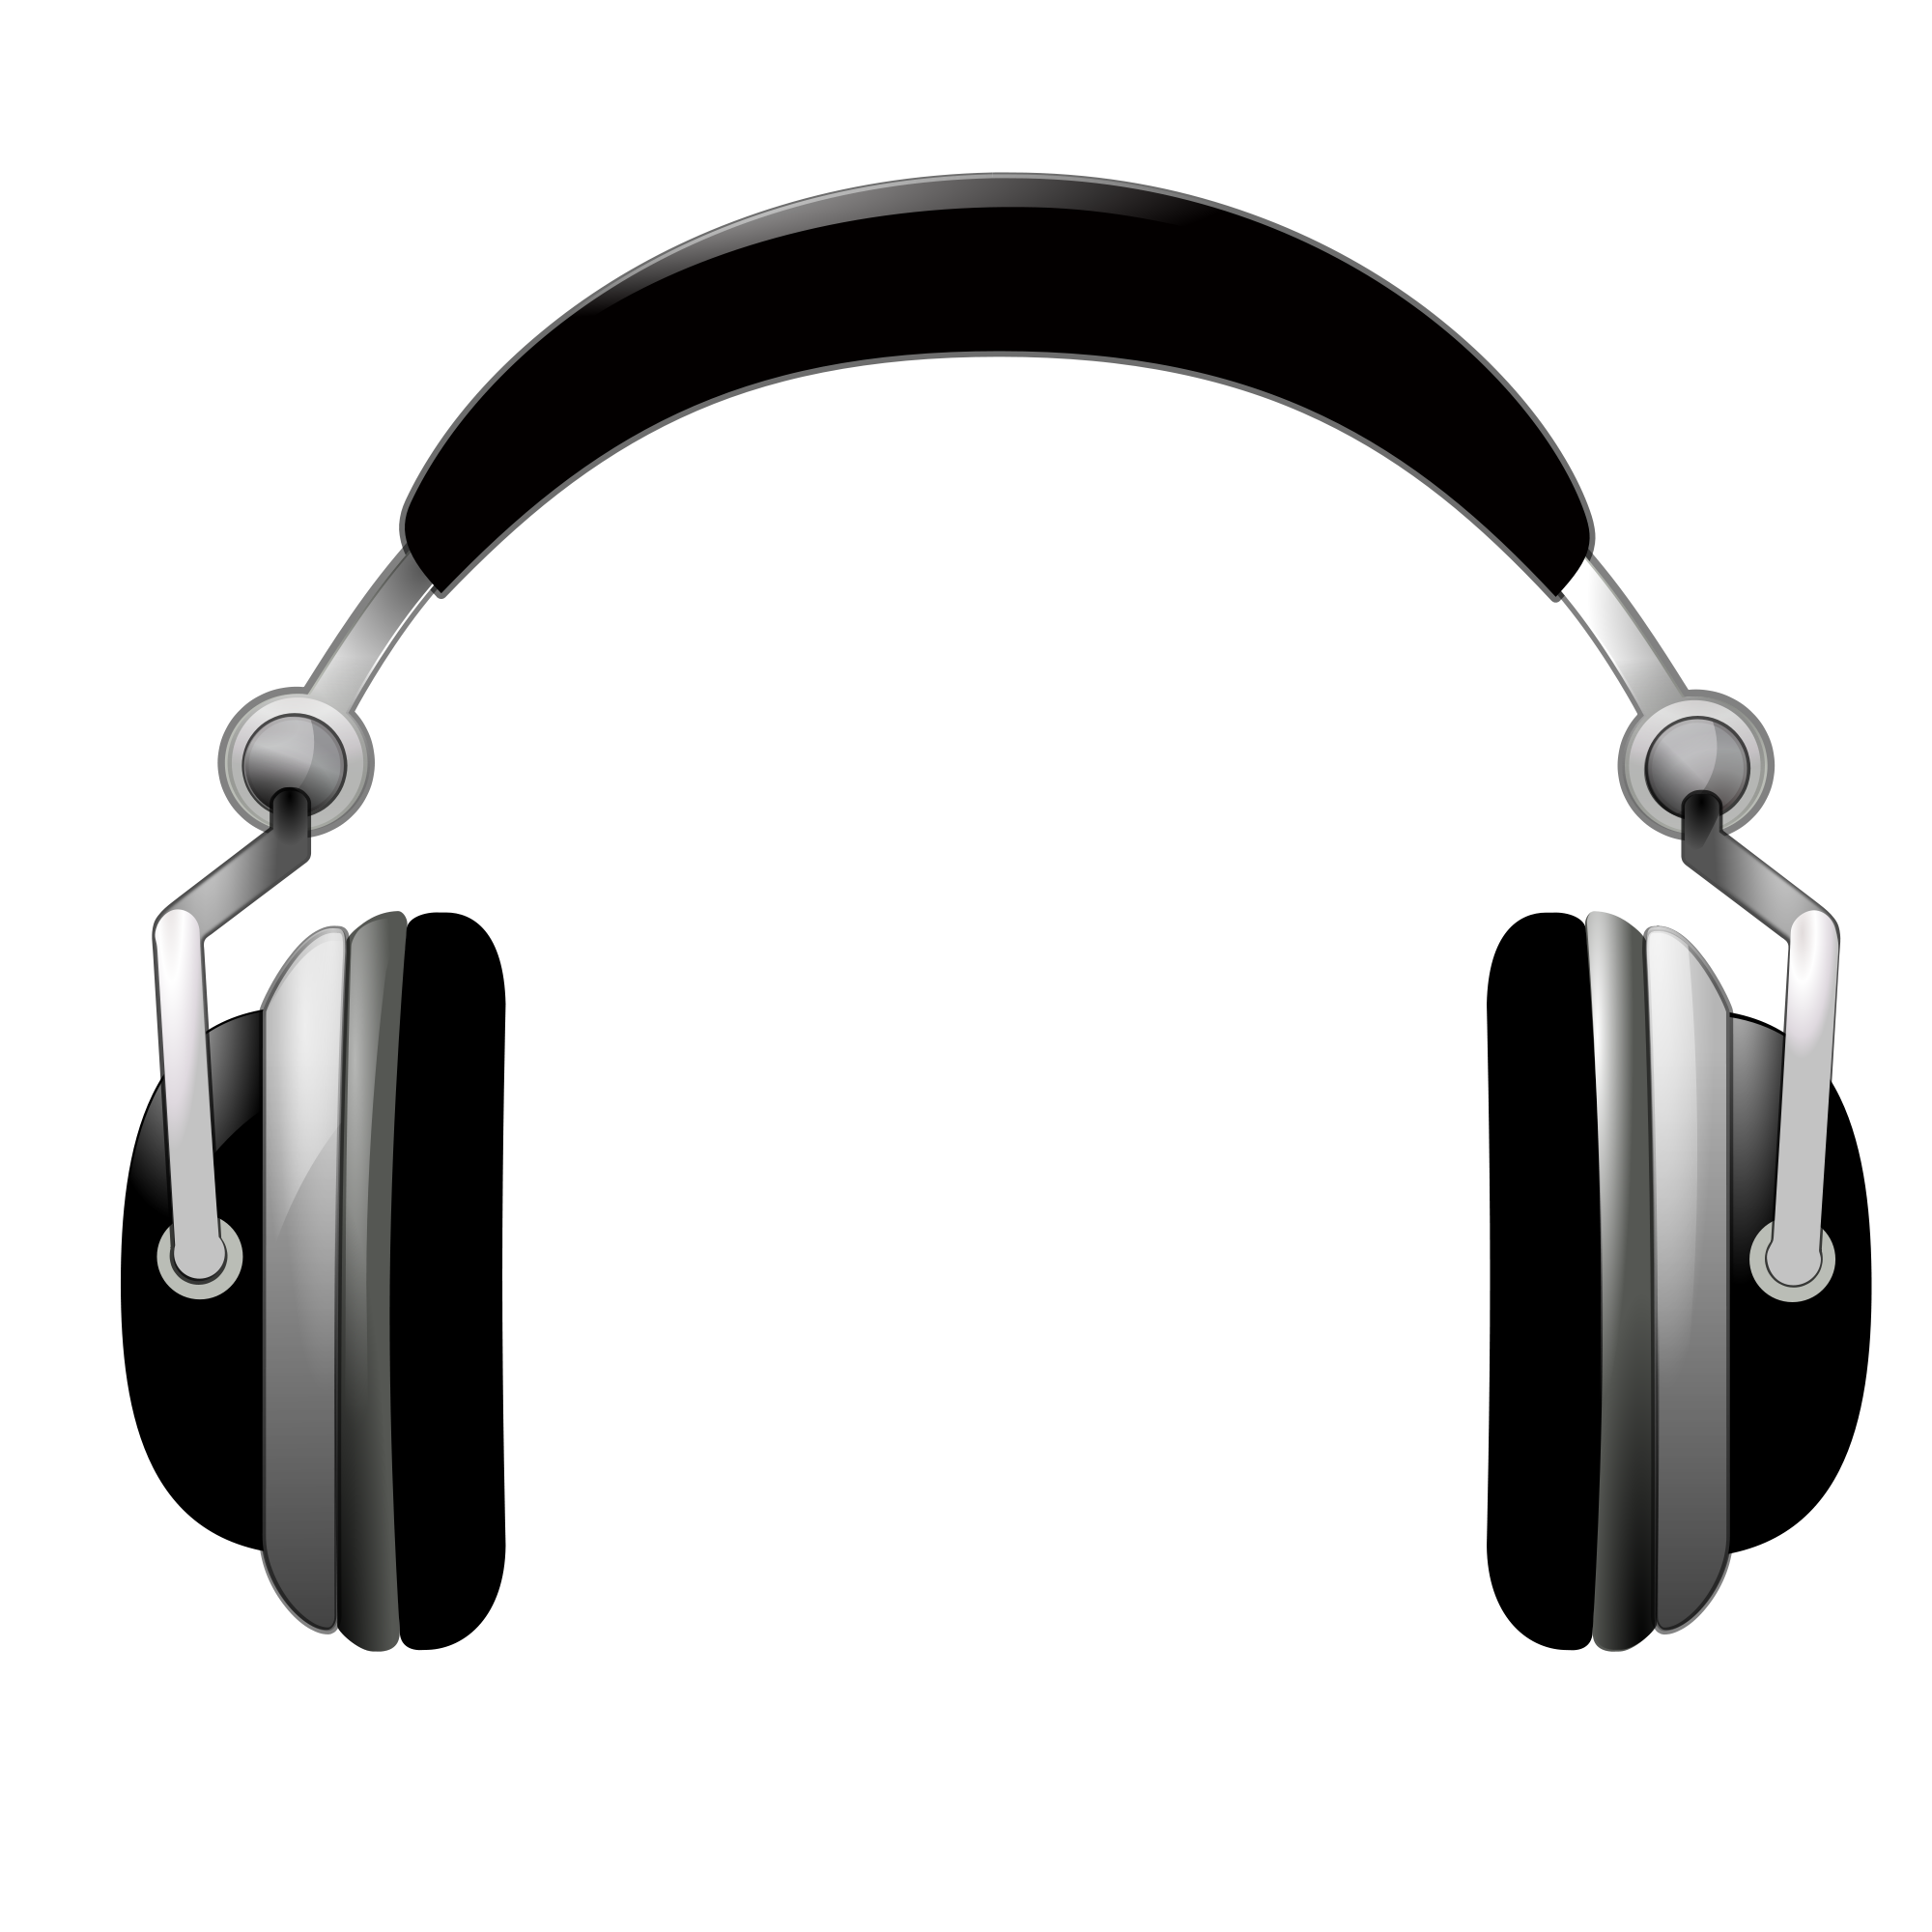 Headphones HD PNG Transparent Headphones HD.PNG Images..